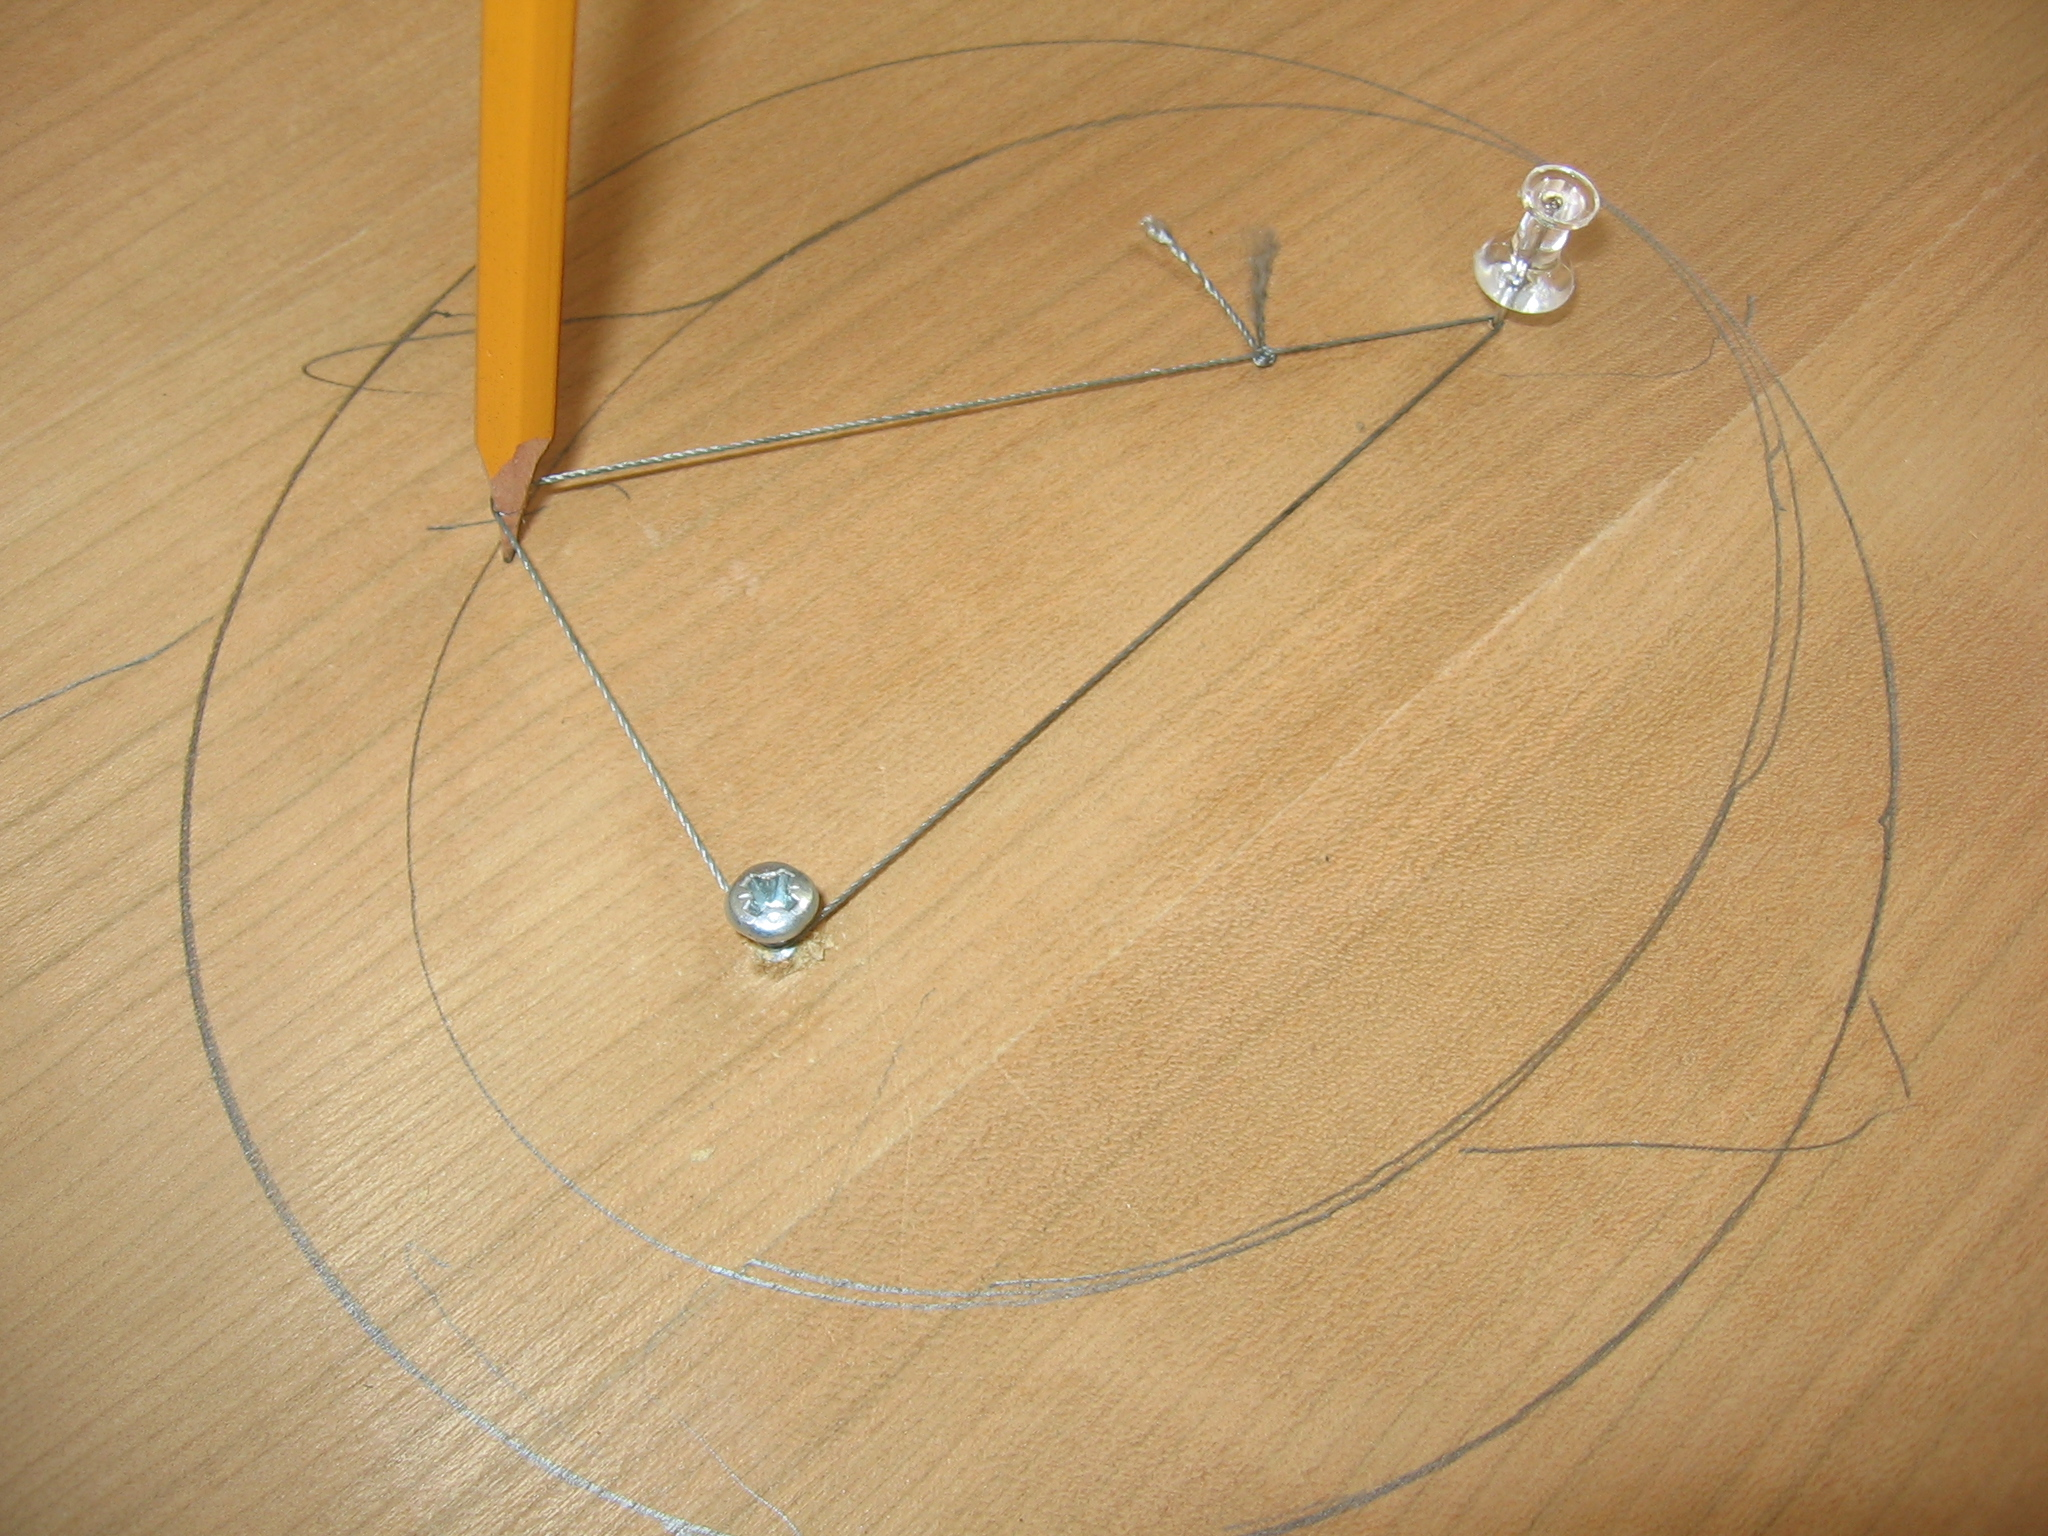 Picture of Drawing Ellipses